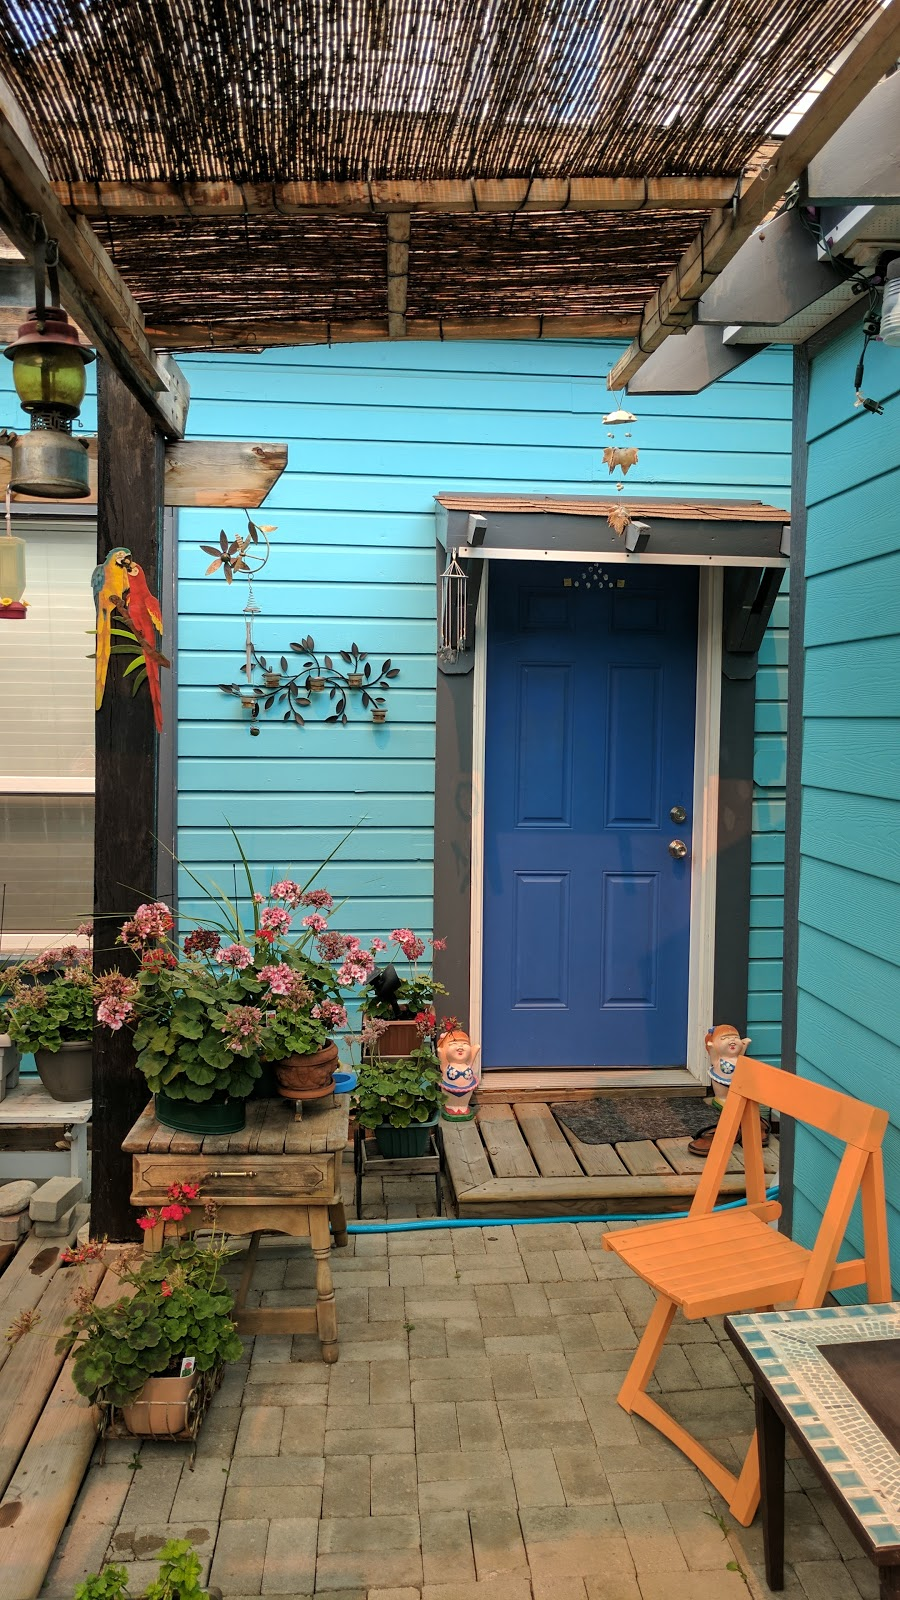 Secret Garden Cafe | cafe | 512 7th Ave, Keremeos, BC V0X 1N0, Canada | 2504990362 OR +1 250-499-0362